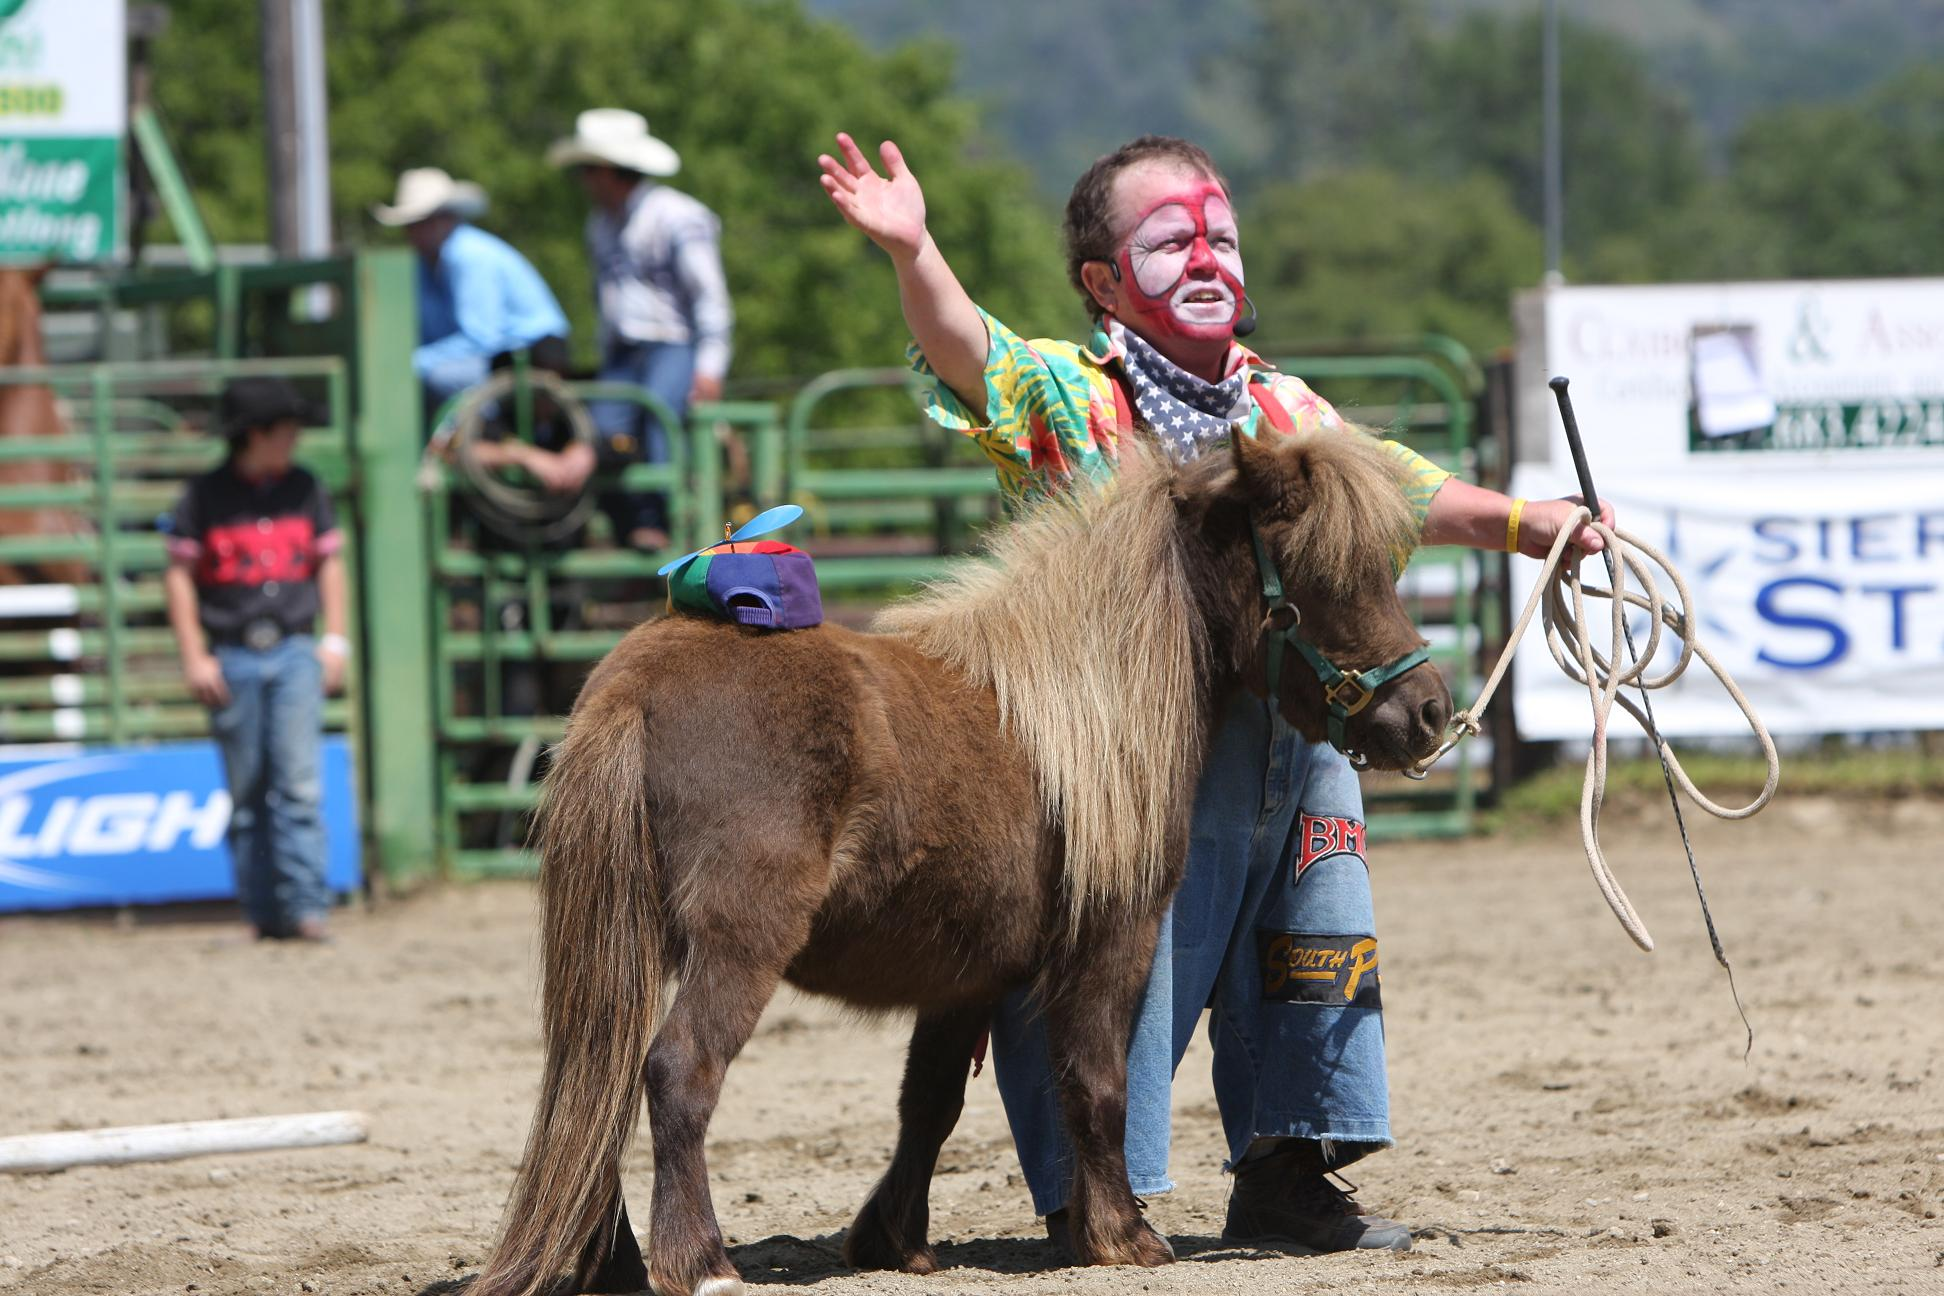 Danny Landis Rodeo Clown 2011 - photo courtesy of Susanne Updike-Waite